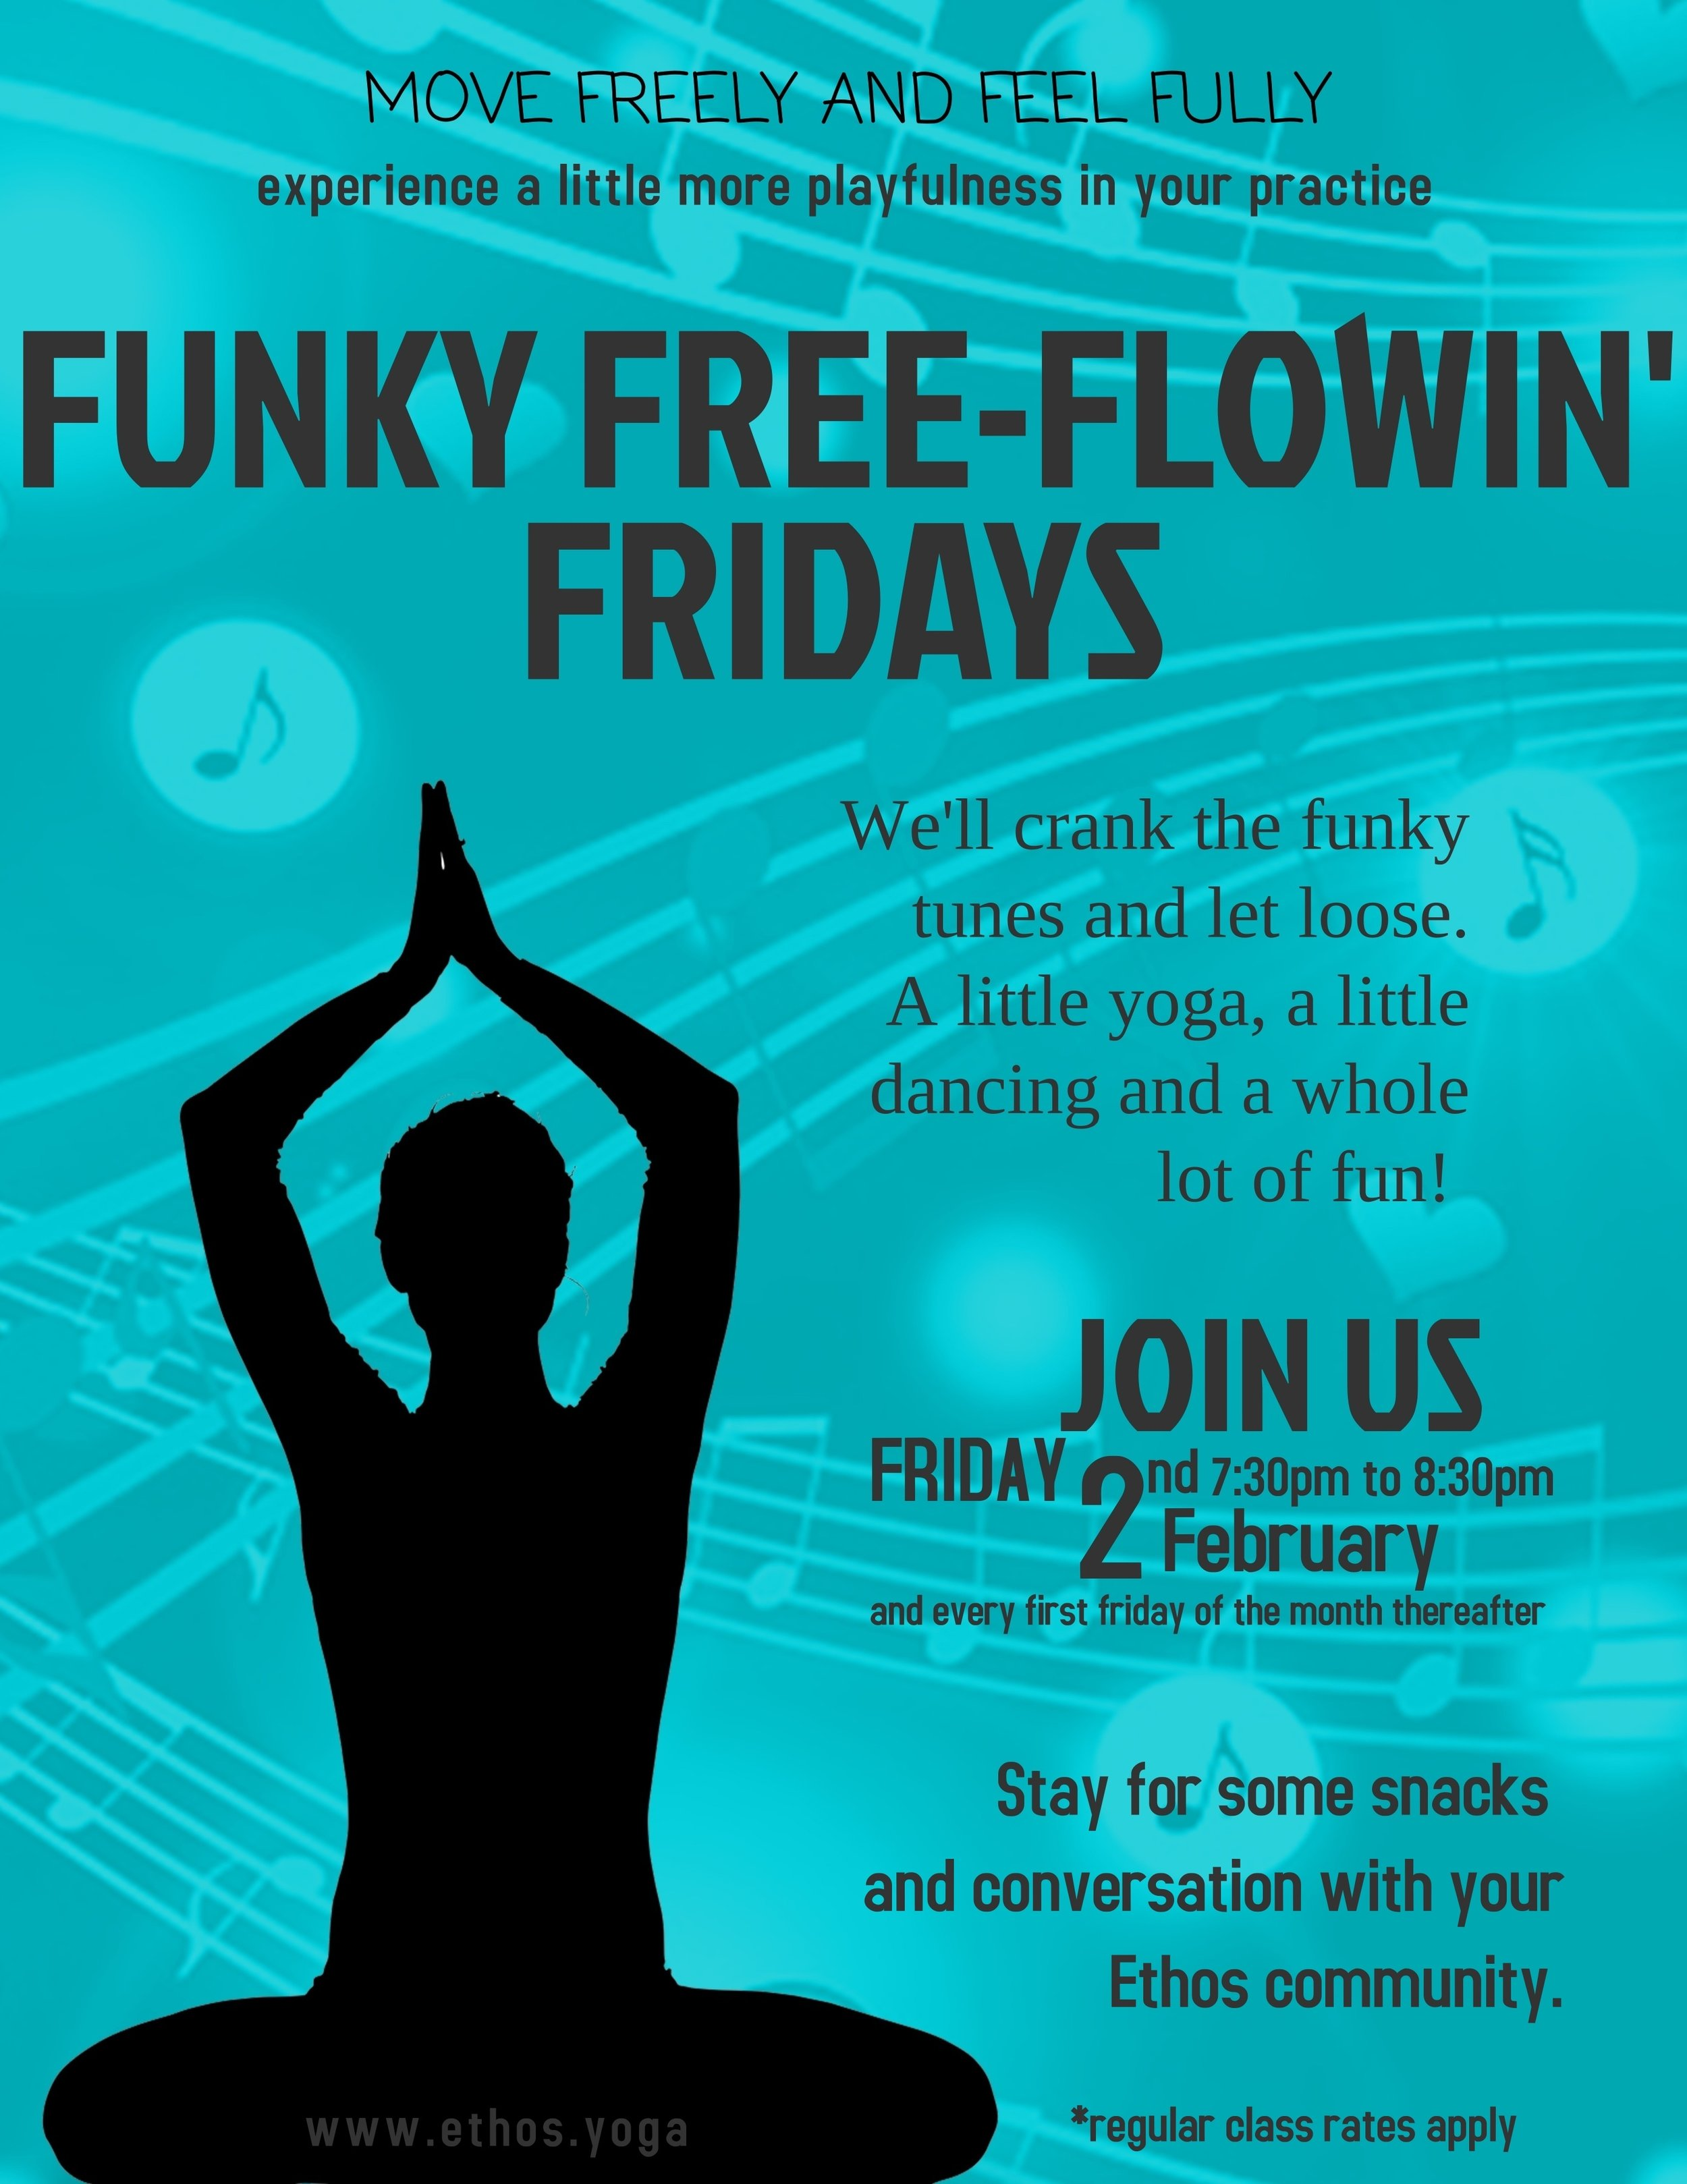 No need to sign up ahead of time, just bring your funky self!